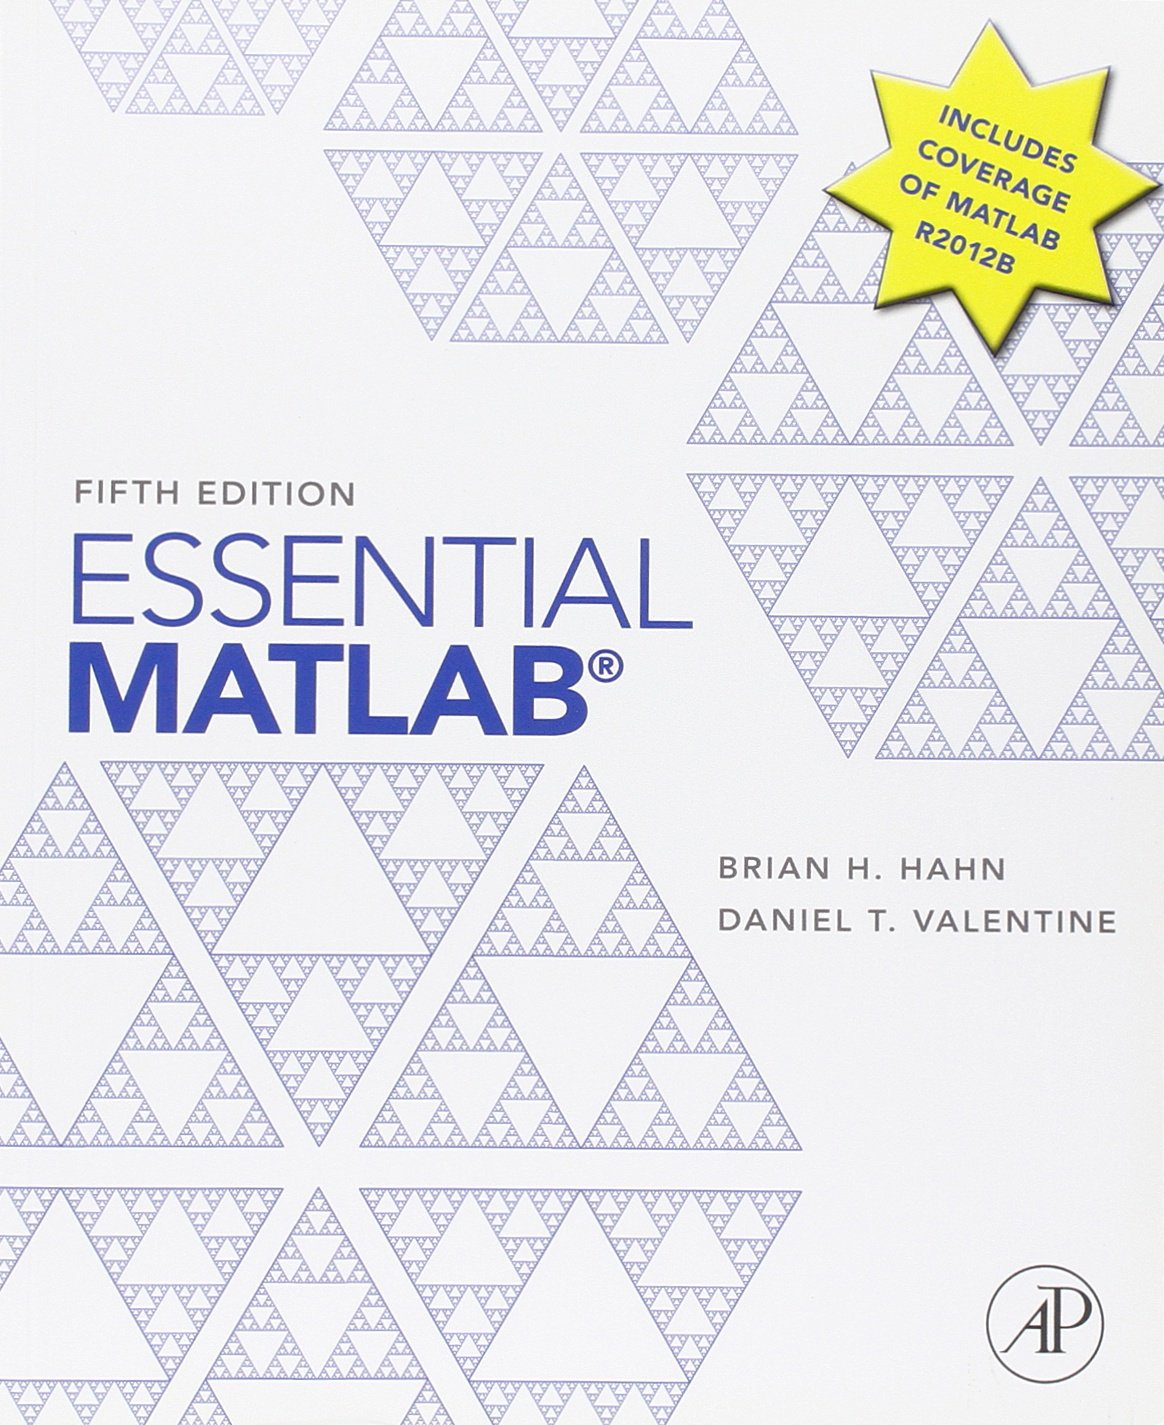 Essential Matlab for Engineers and Scientists ISBN-13 9780123943989